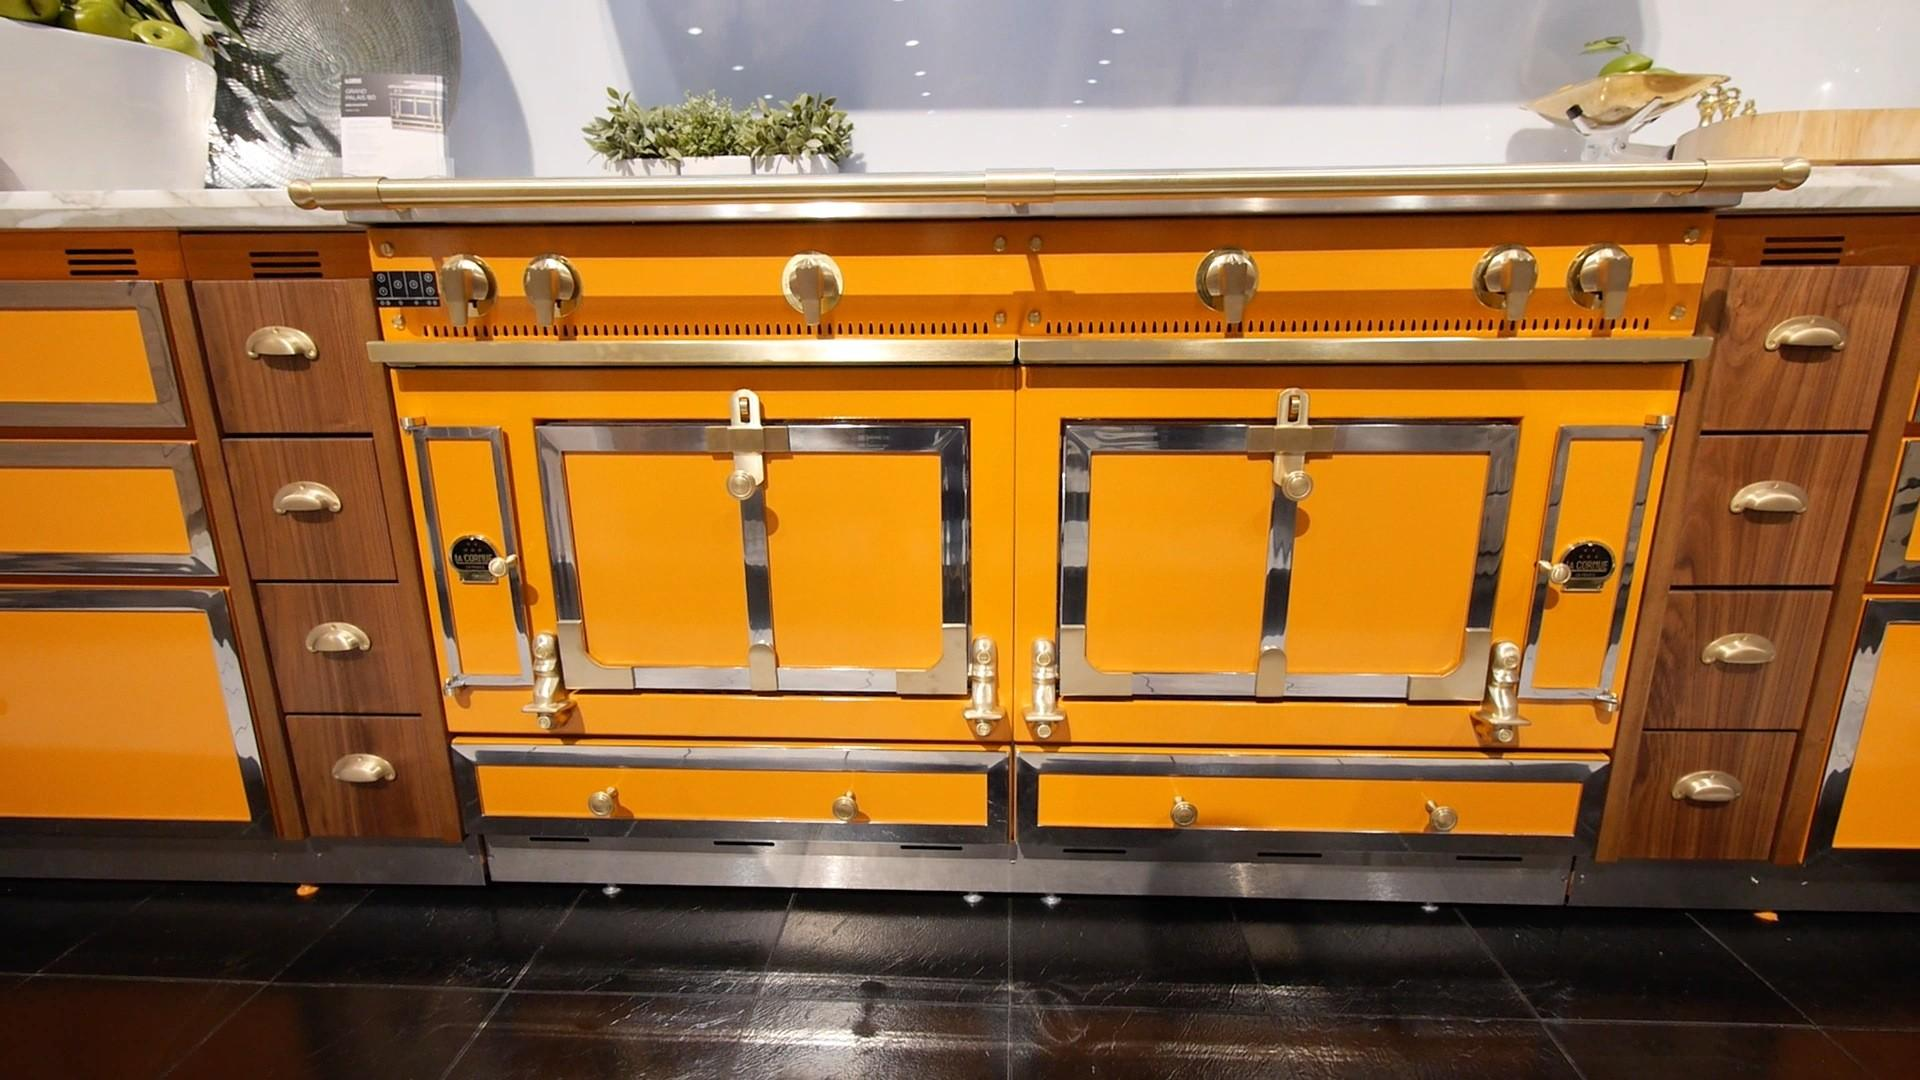 Video Cornue Ovens Cost More Than Your Car